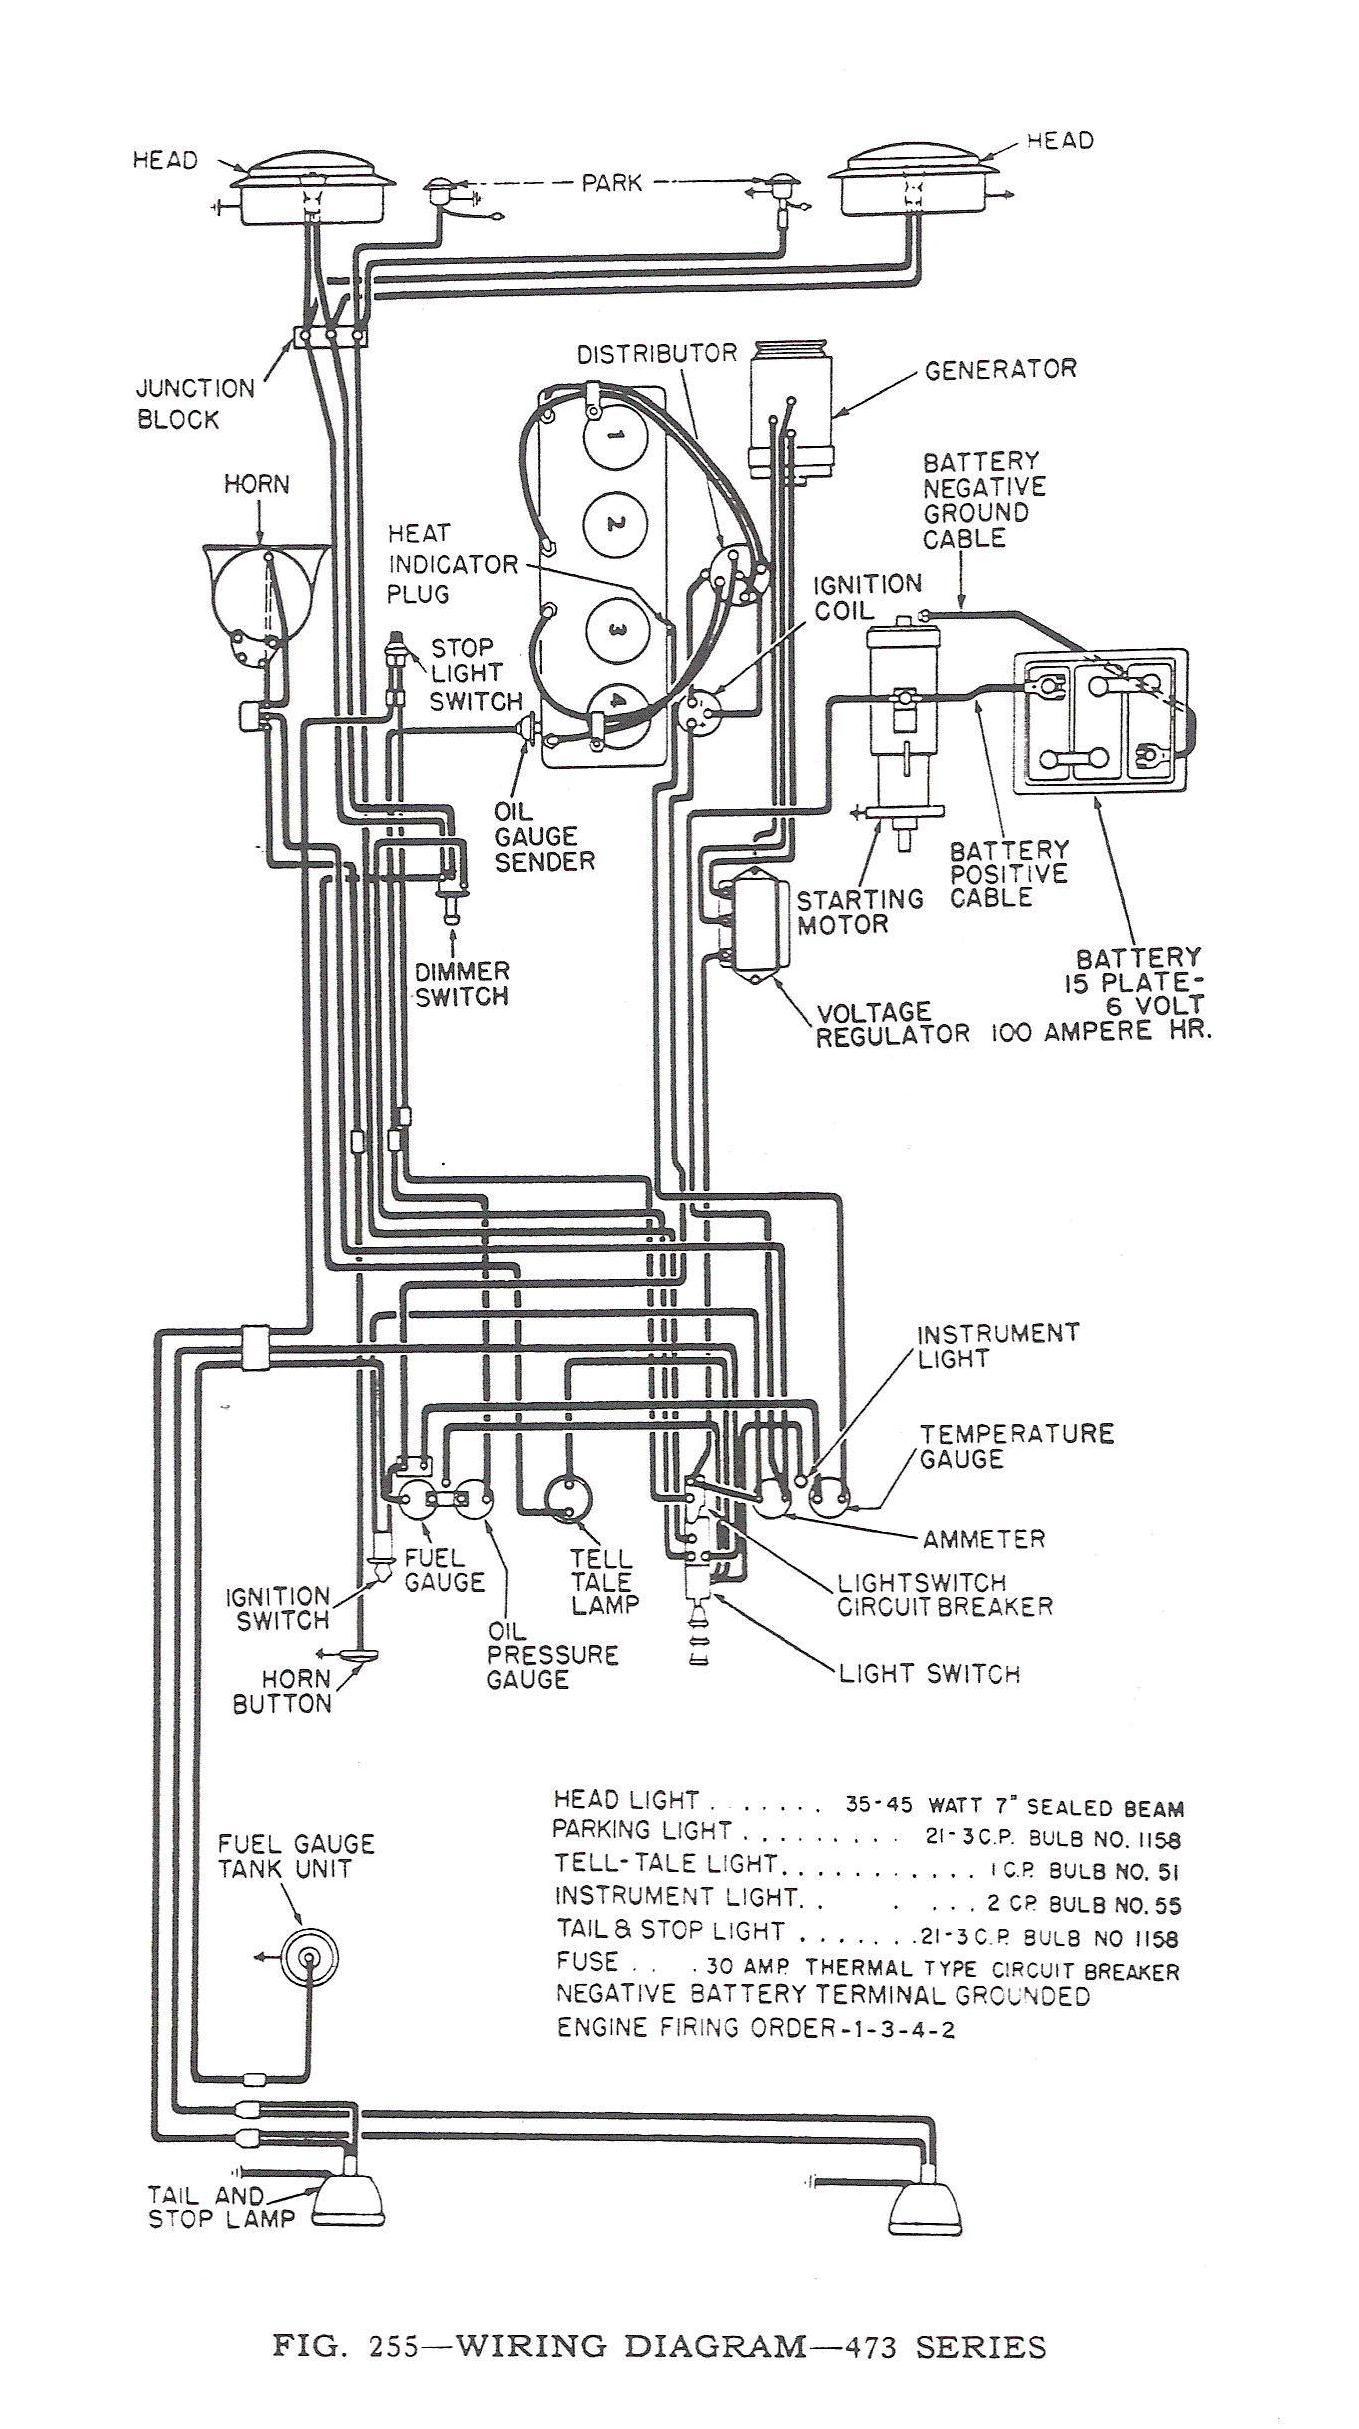 1948 Jeepster Wiring Diagram • Wiring Diagram For Free